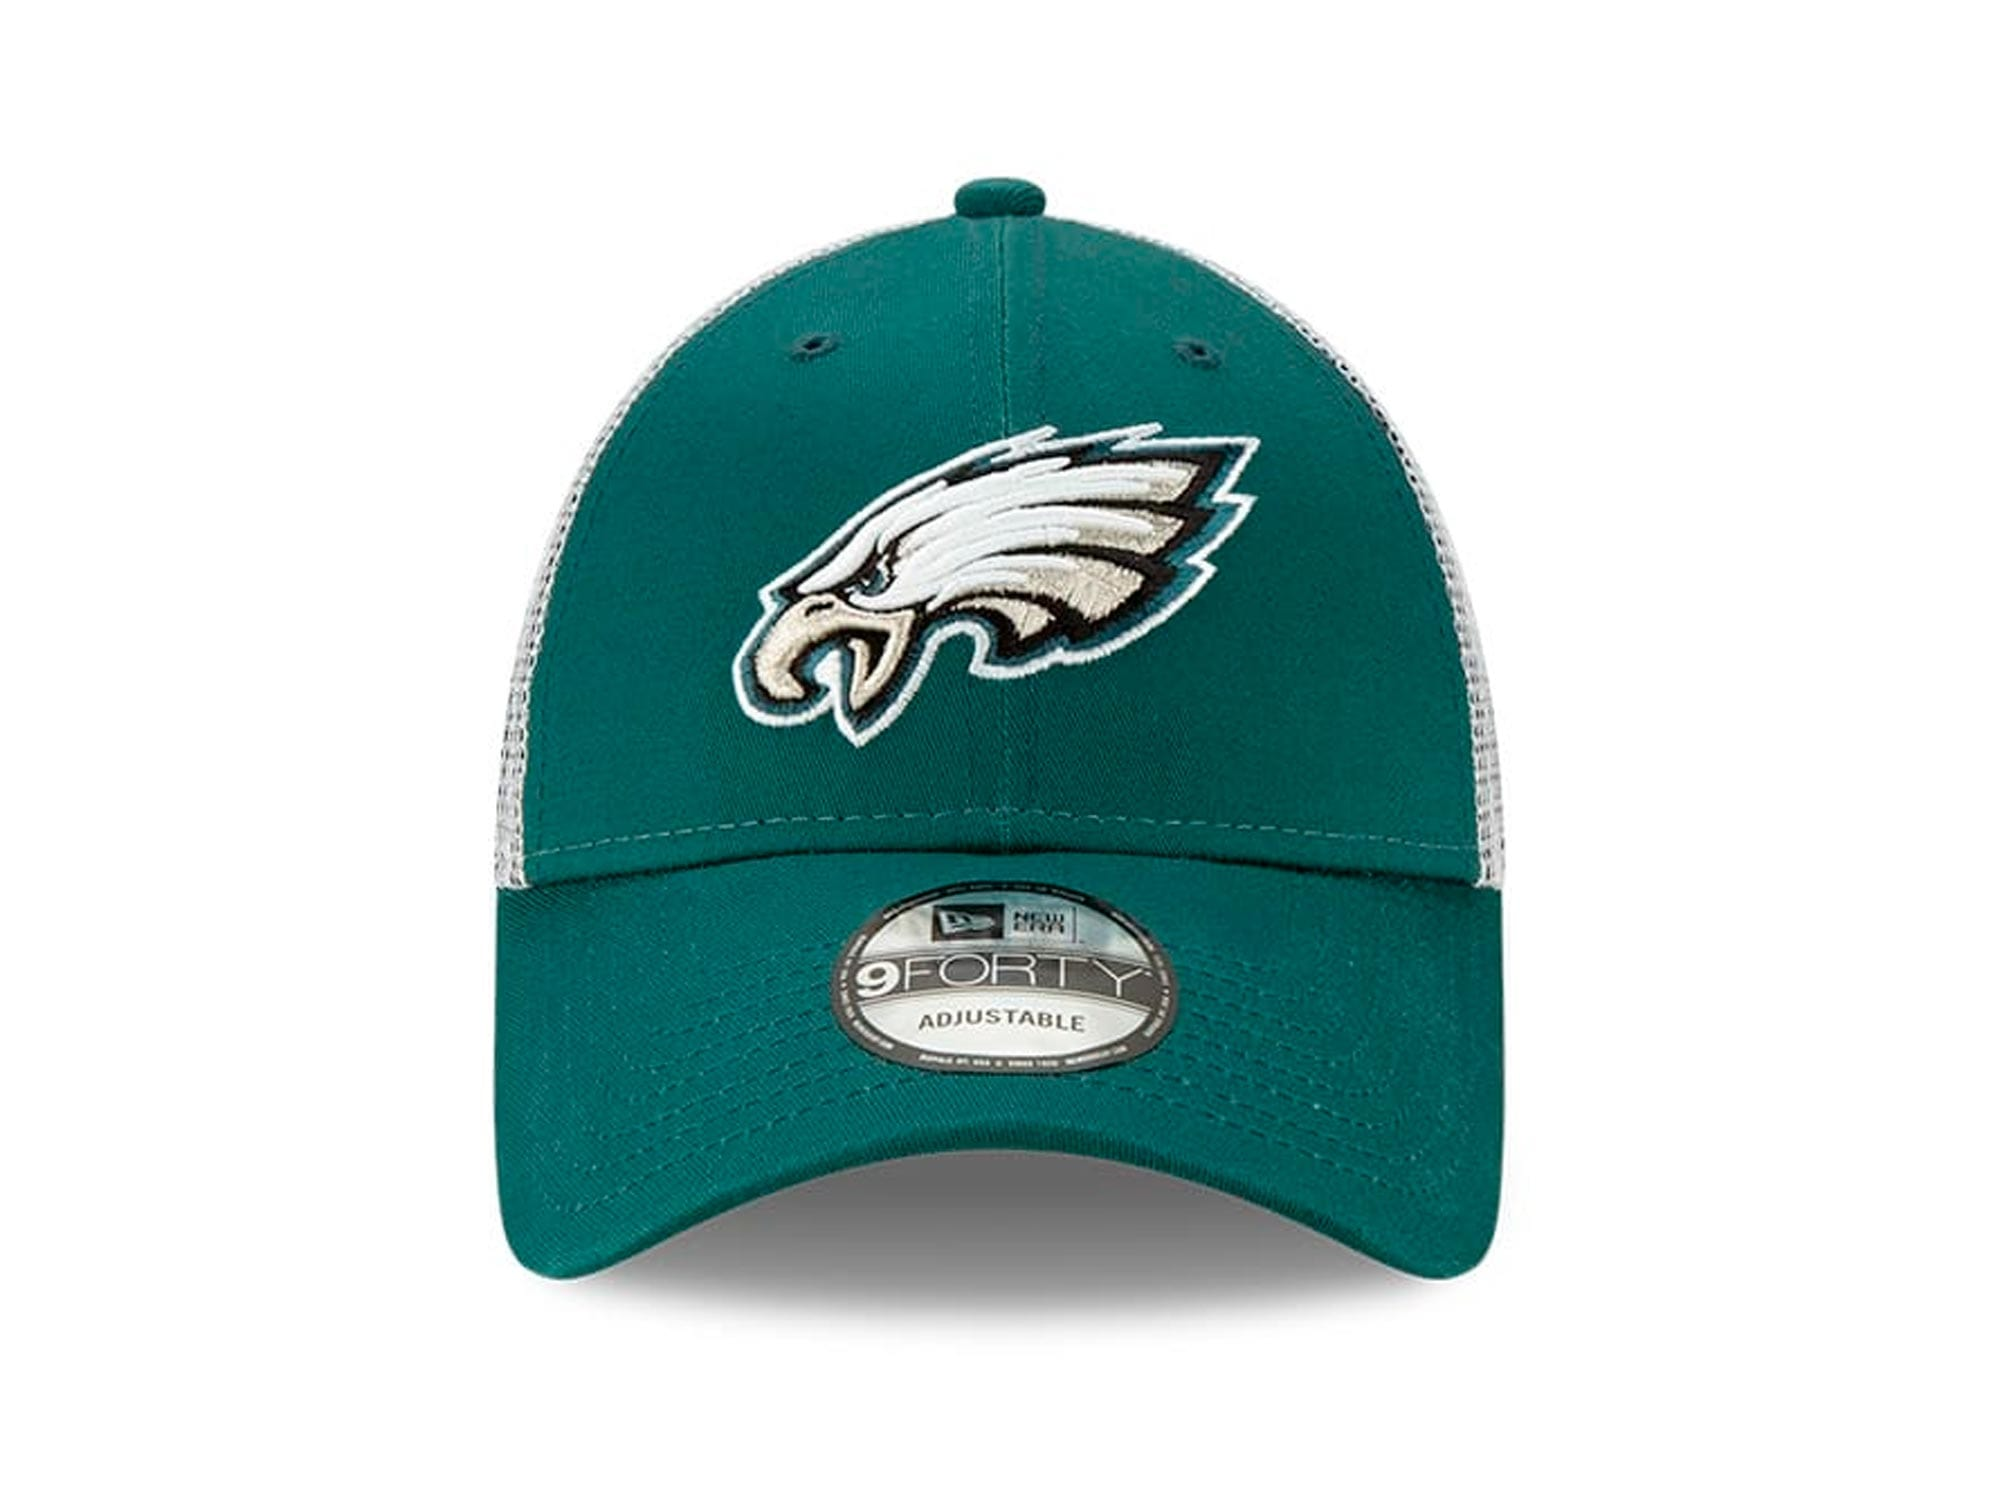 Jockey New Era Nfl 940 Philadelphia Eagles Hombre Verde